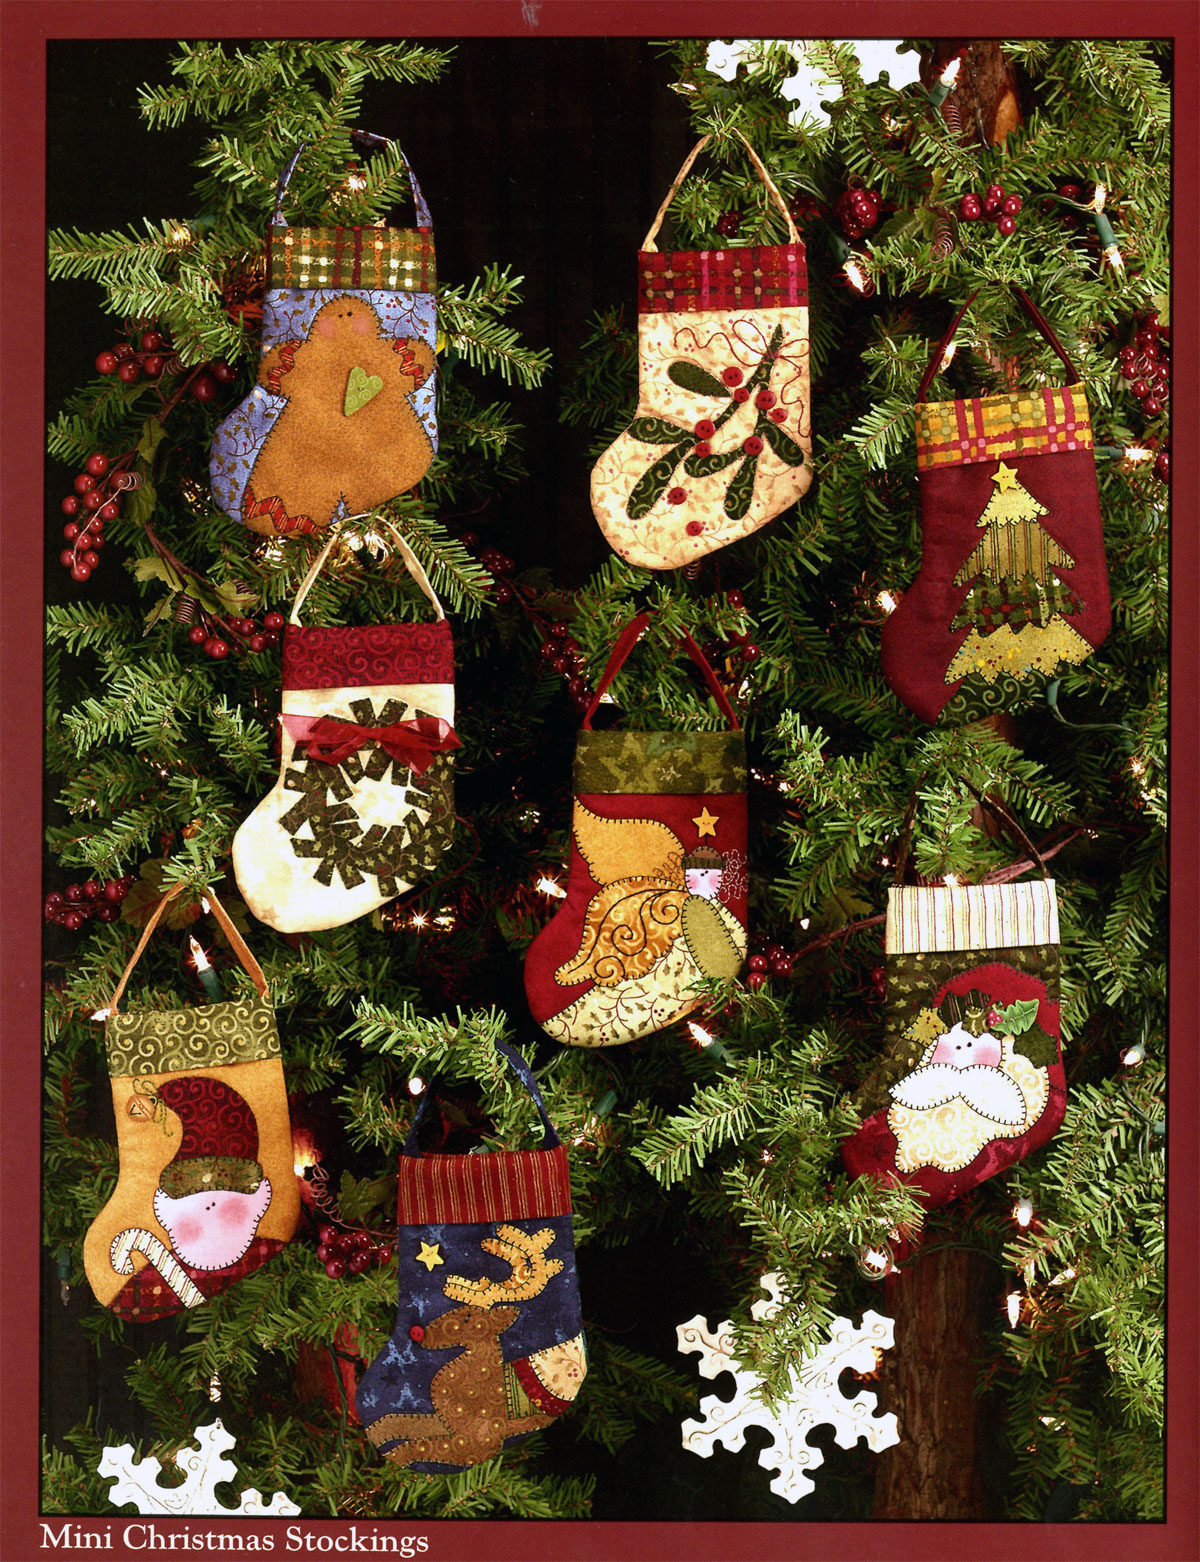 Happy-Holidays-to-You-sewing-pattern-book-Art-To-Heart-4